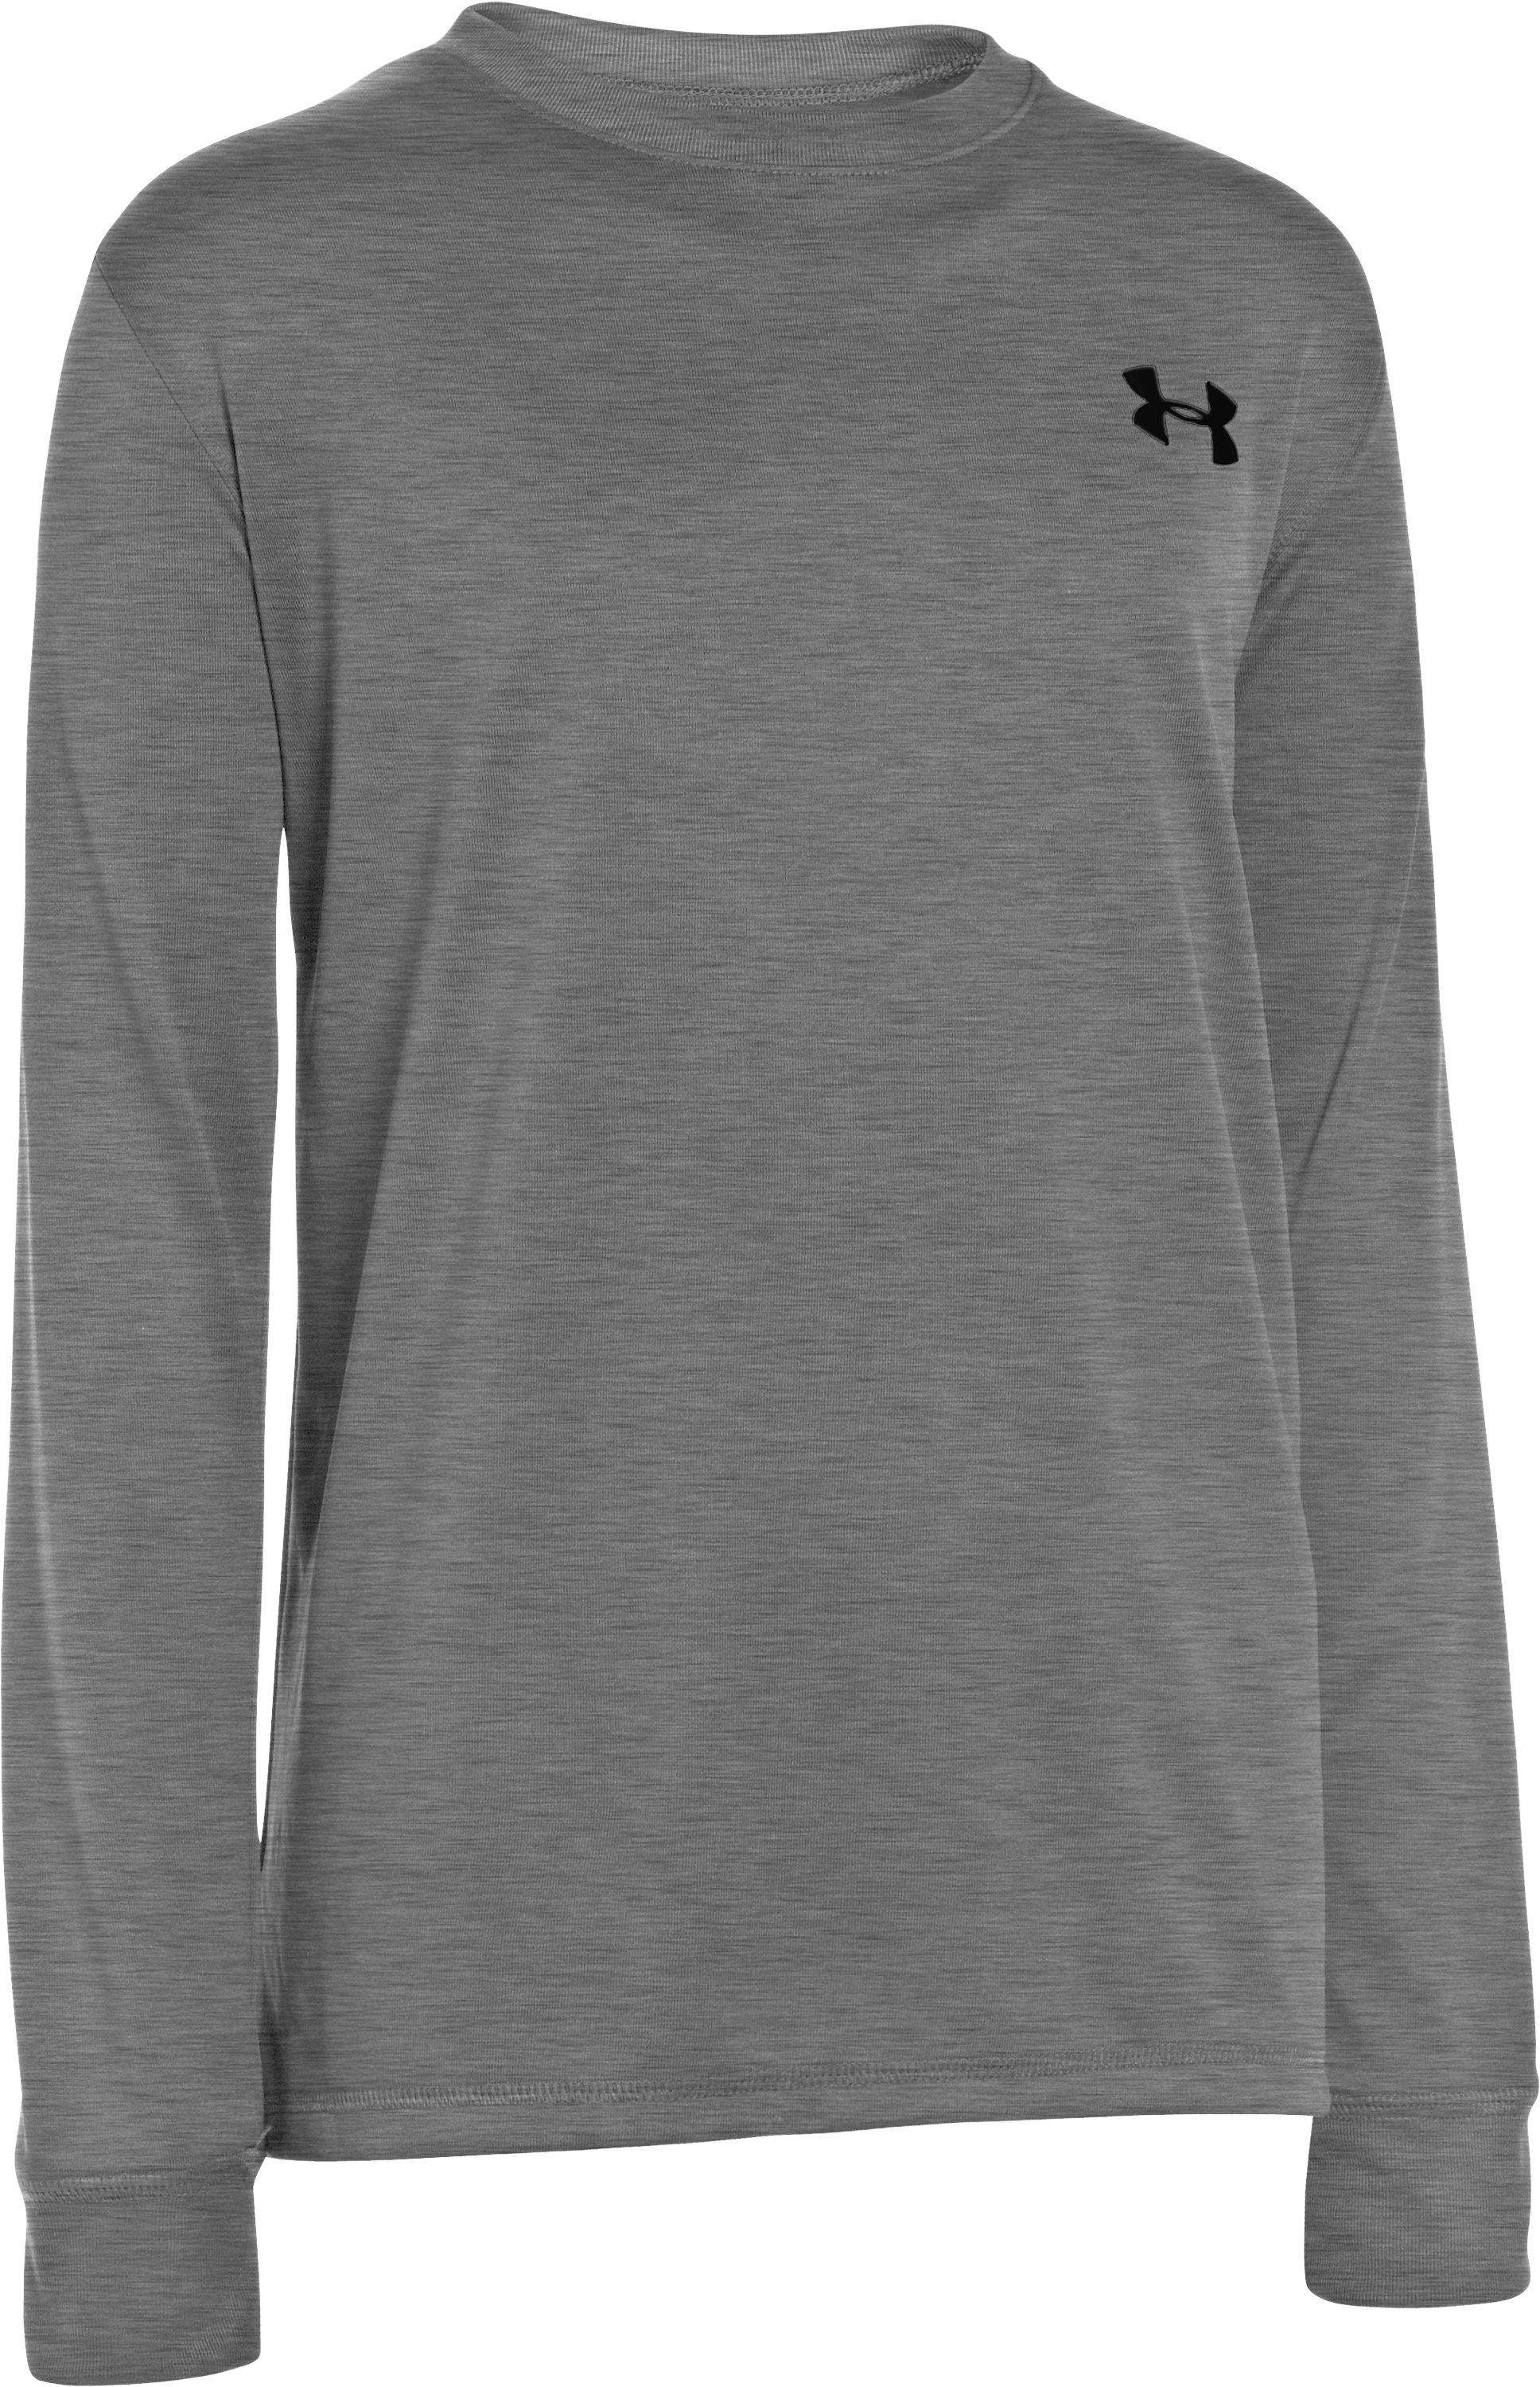 Boys' UA Cray Long Sleeve T-Shirt, True Gray Heather, zoomed image